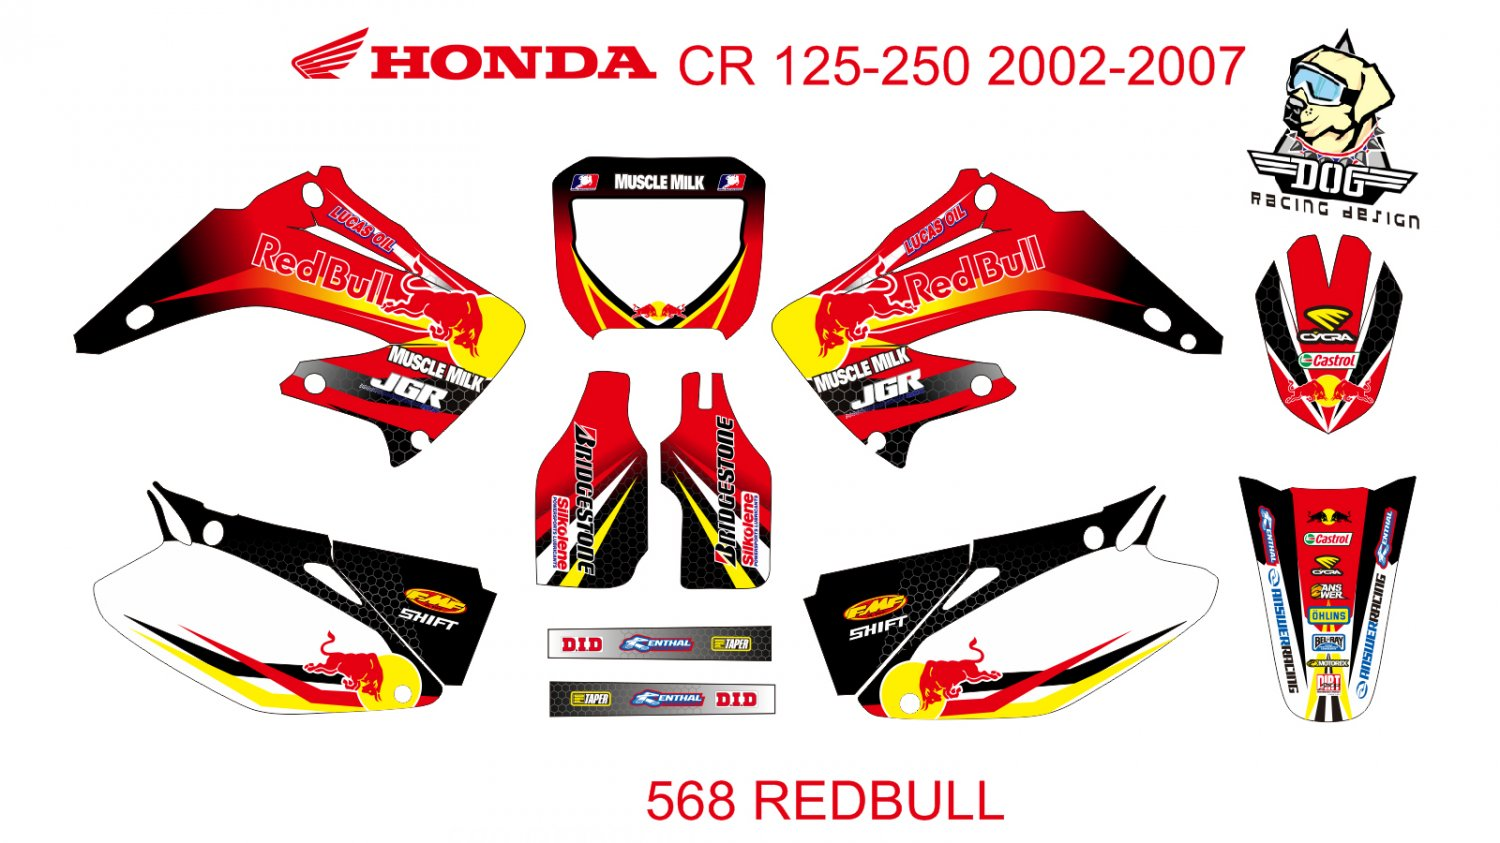 HONDA CR 125-250 2002-2007 GRAPHIC DECAL KIT CODE.568